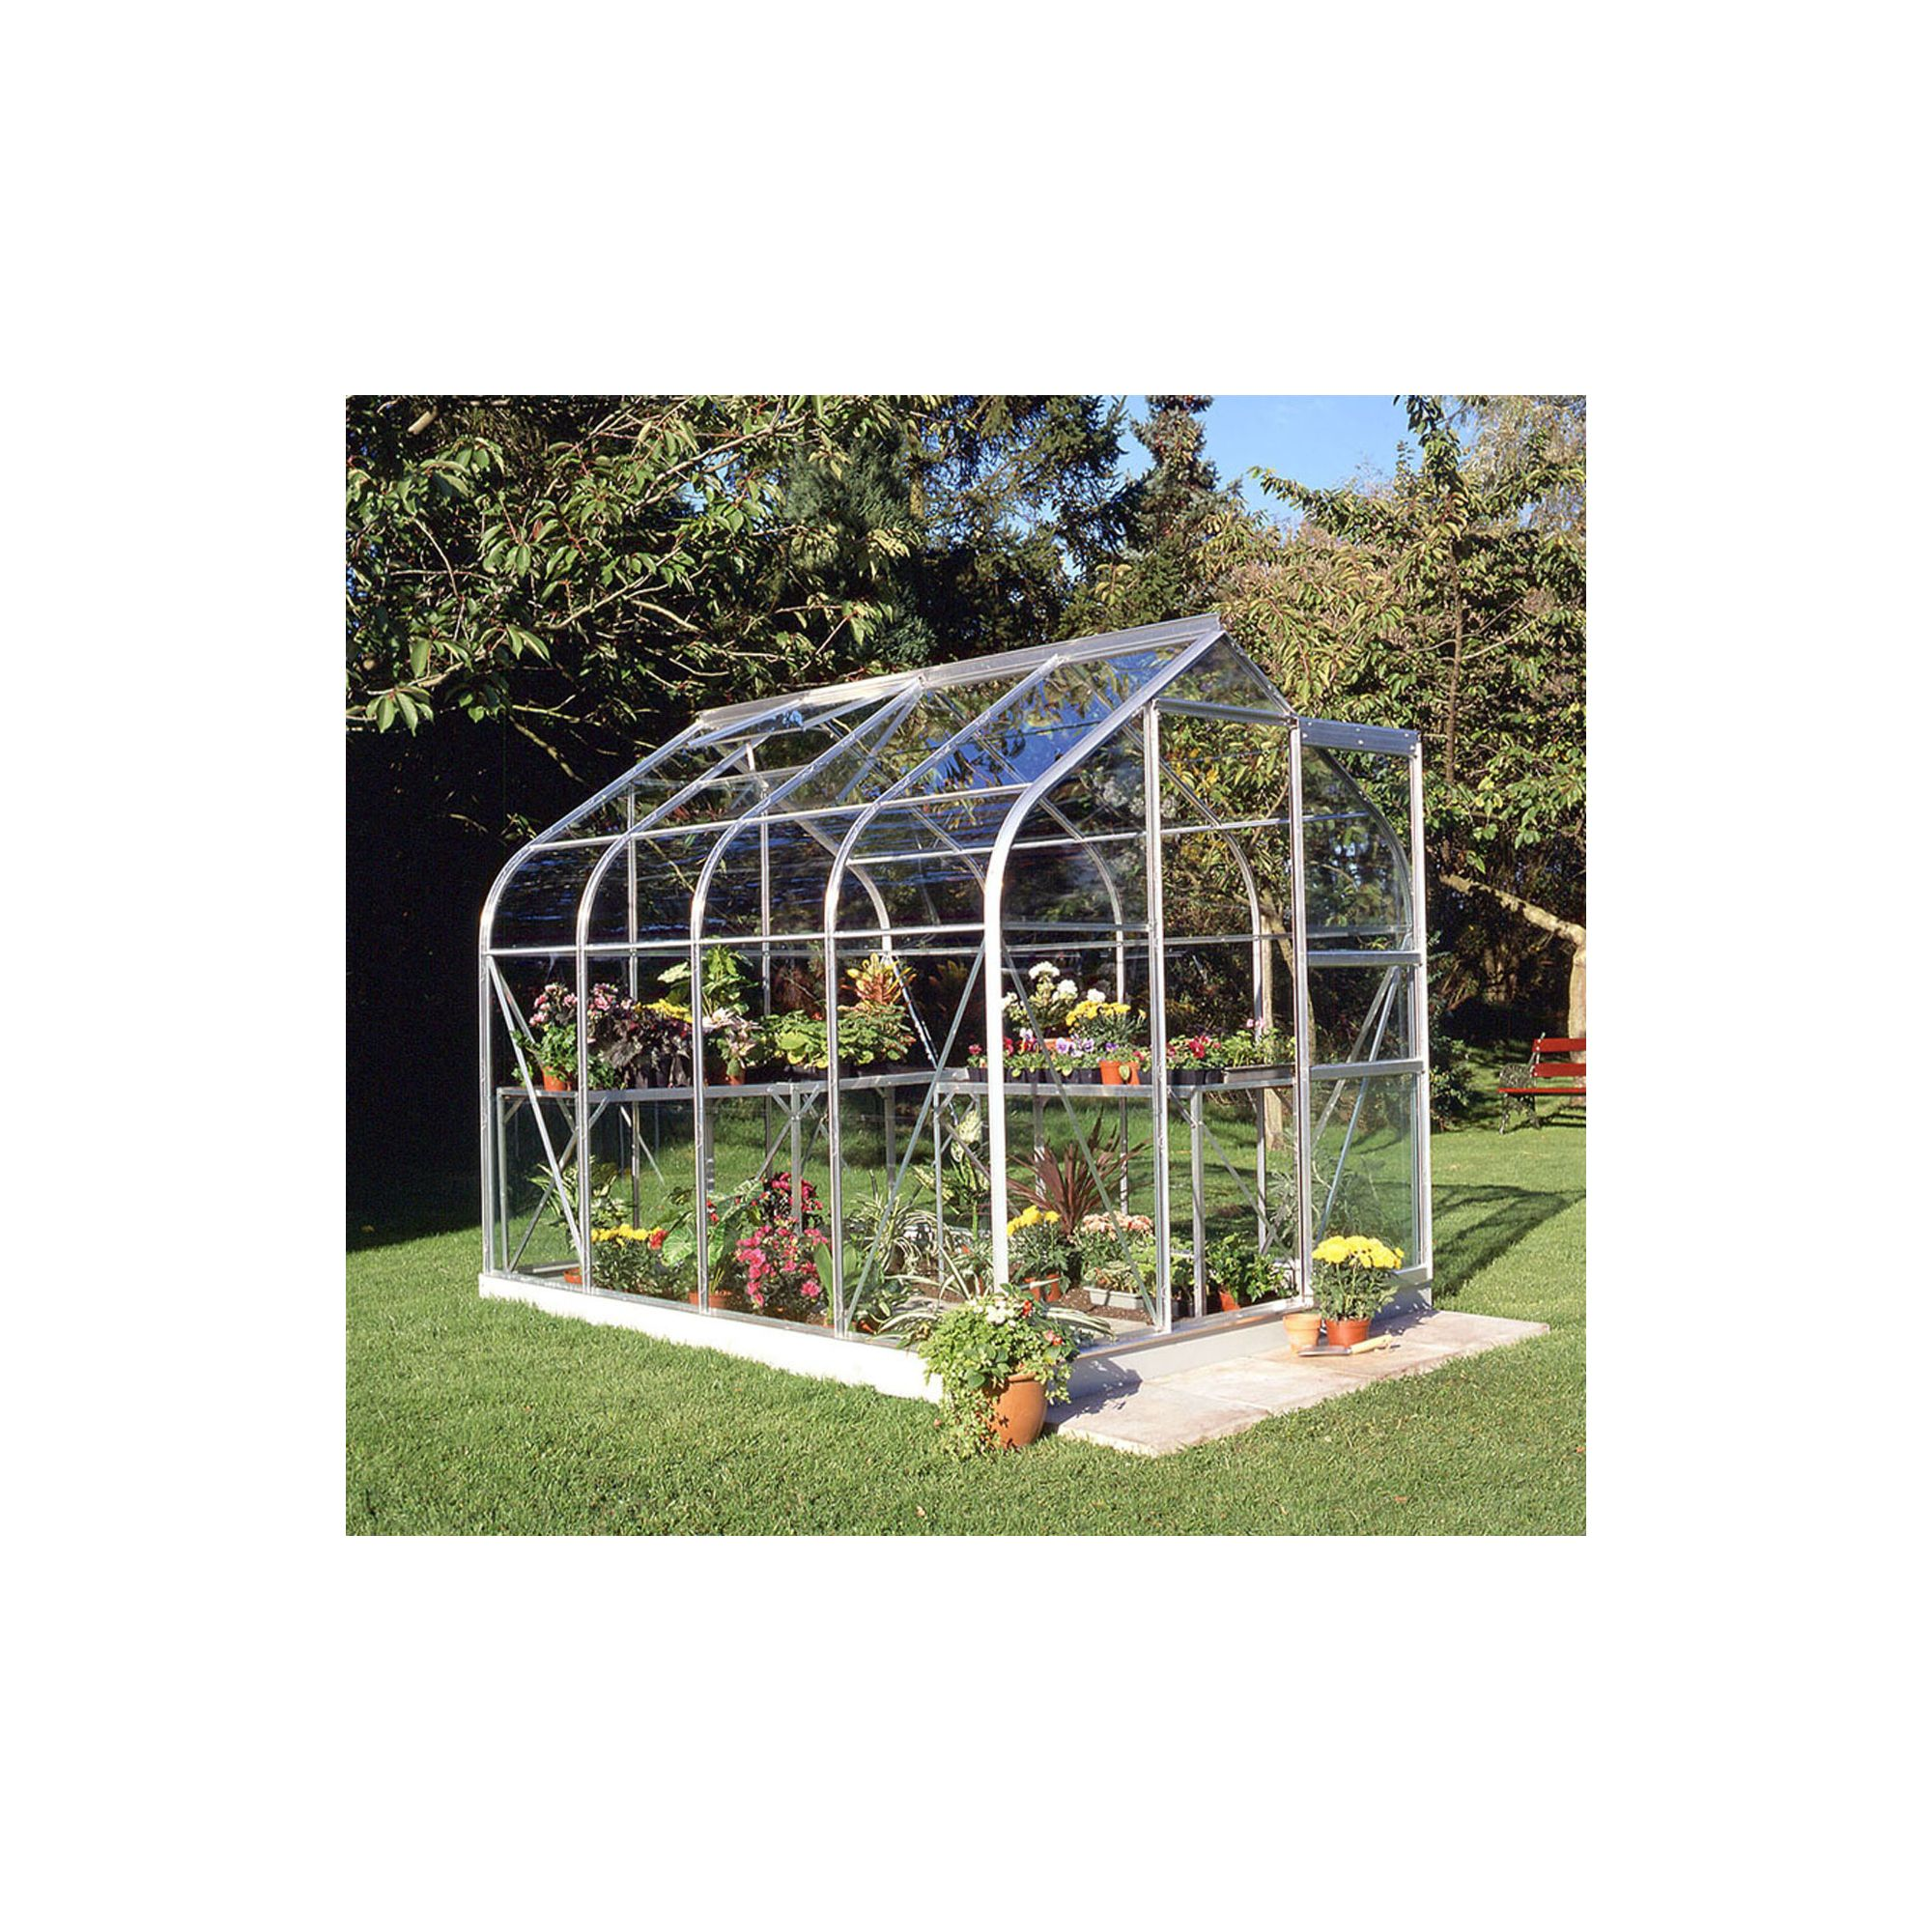 Halls 8x6 Curved Aluminium Greenhouse + Base - Toughened Glass at Tesco Direct